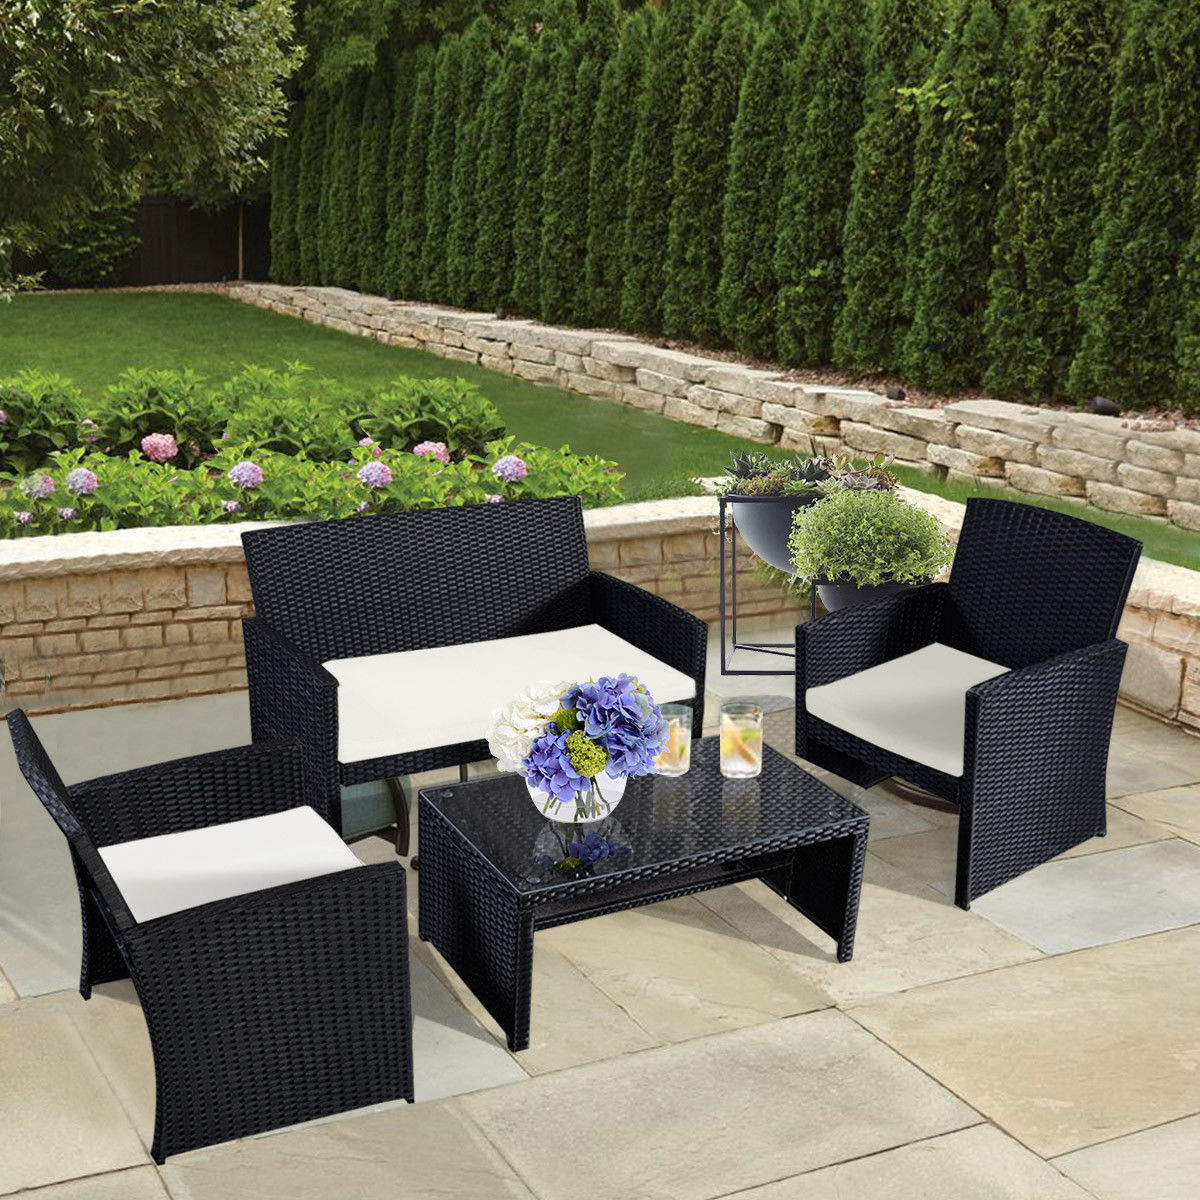 Rattan set  Costway 4 Pc Rattan Patio Furniture Set Garden Lawn Sofa Wicker ...